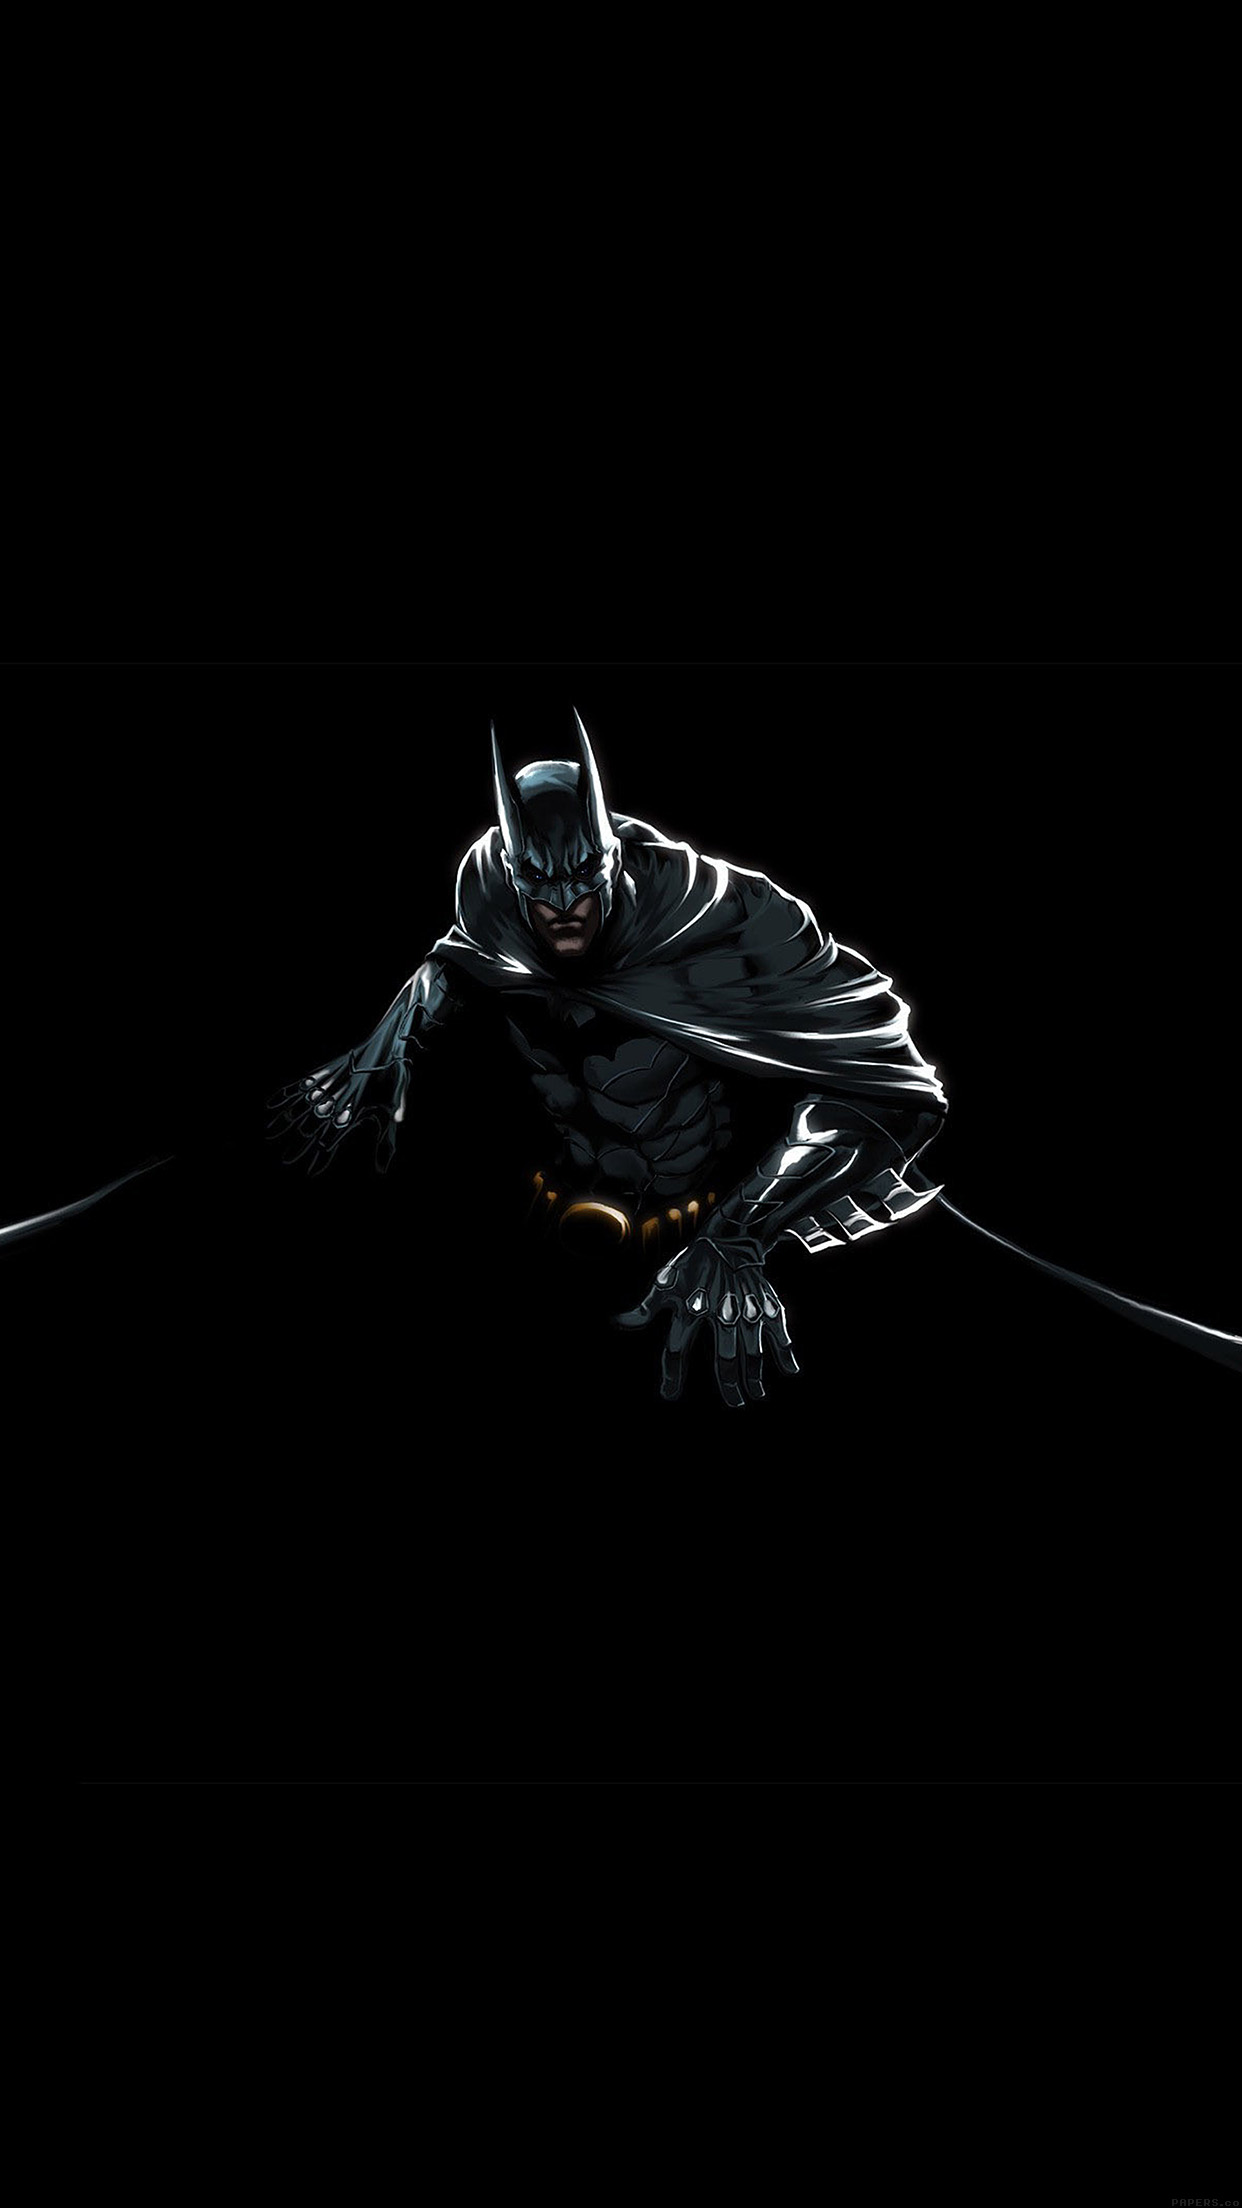 ah37-batman-dark-hero-pose-illust-art - Papers.co